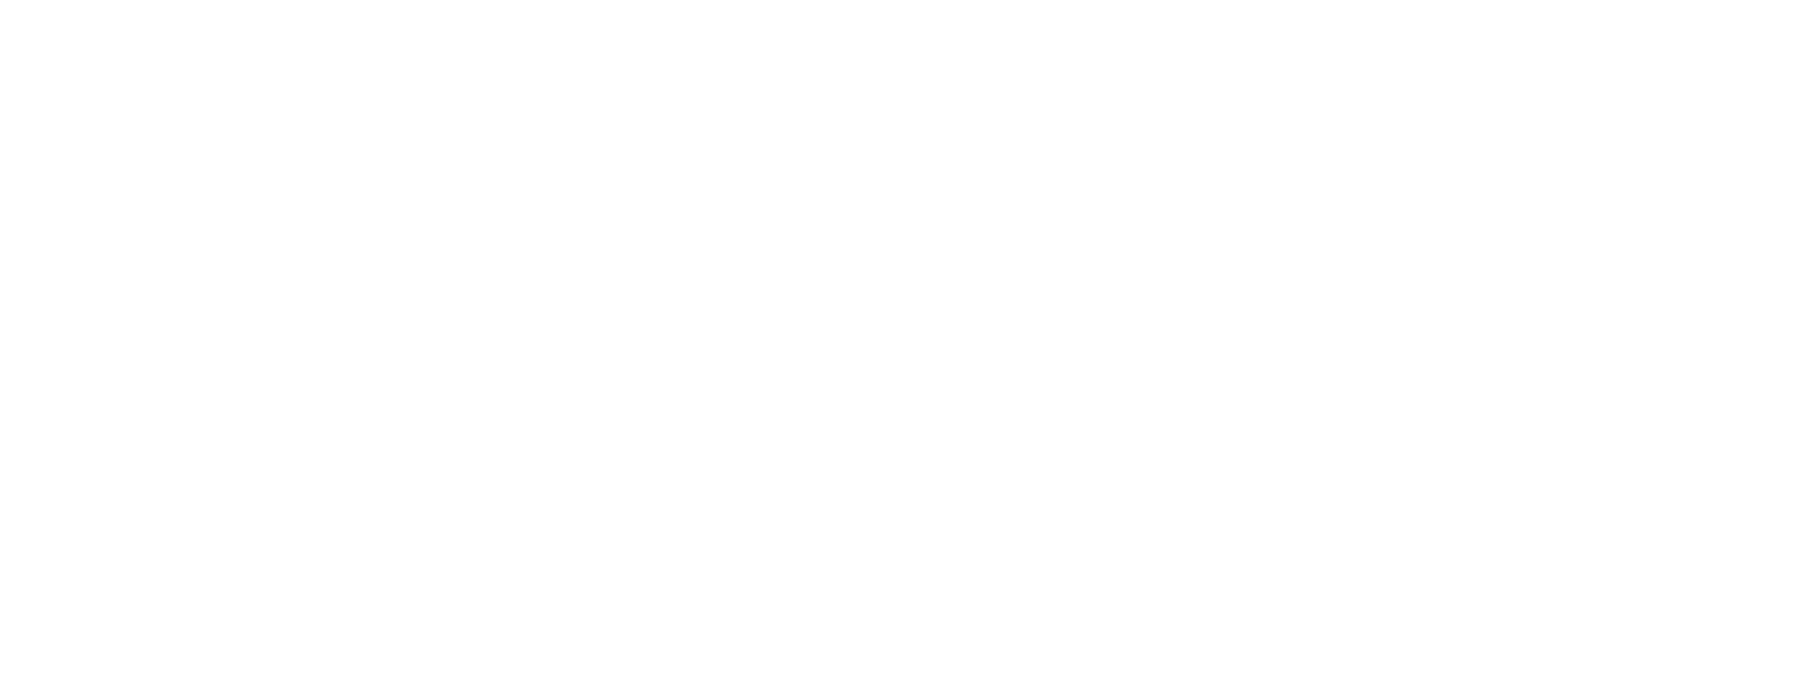 Travel brings power and love back into your life.